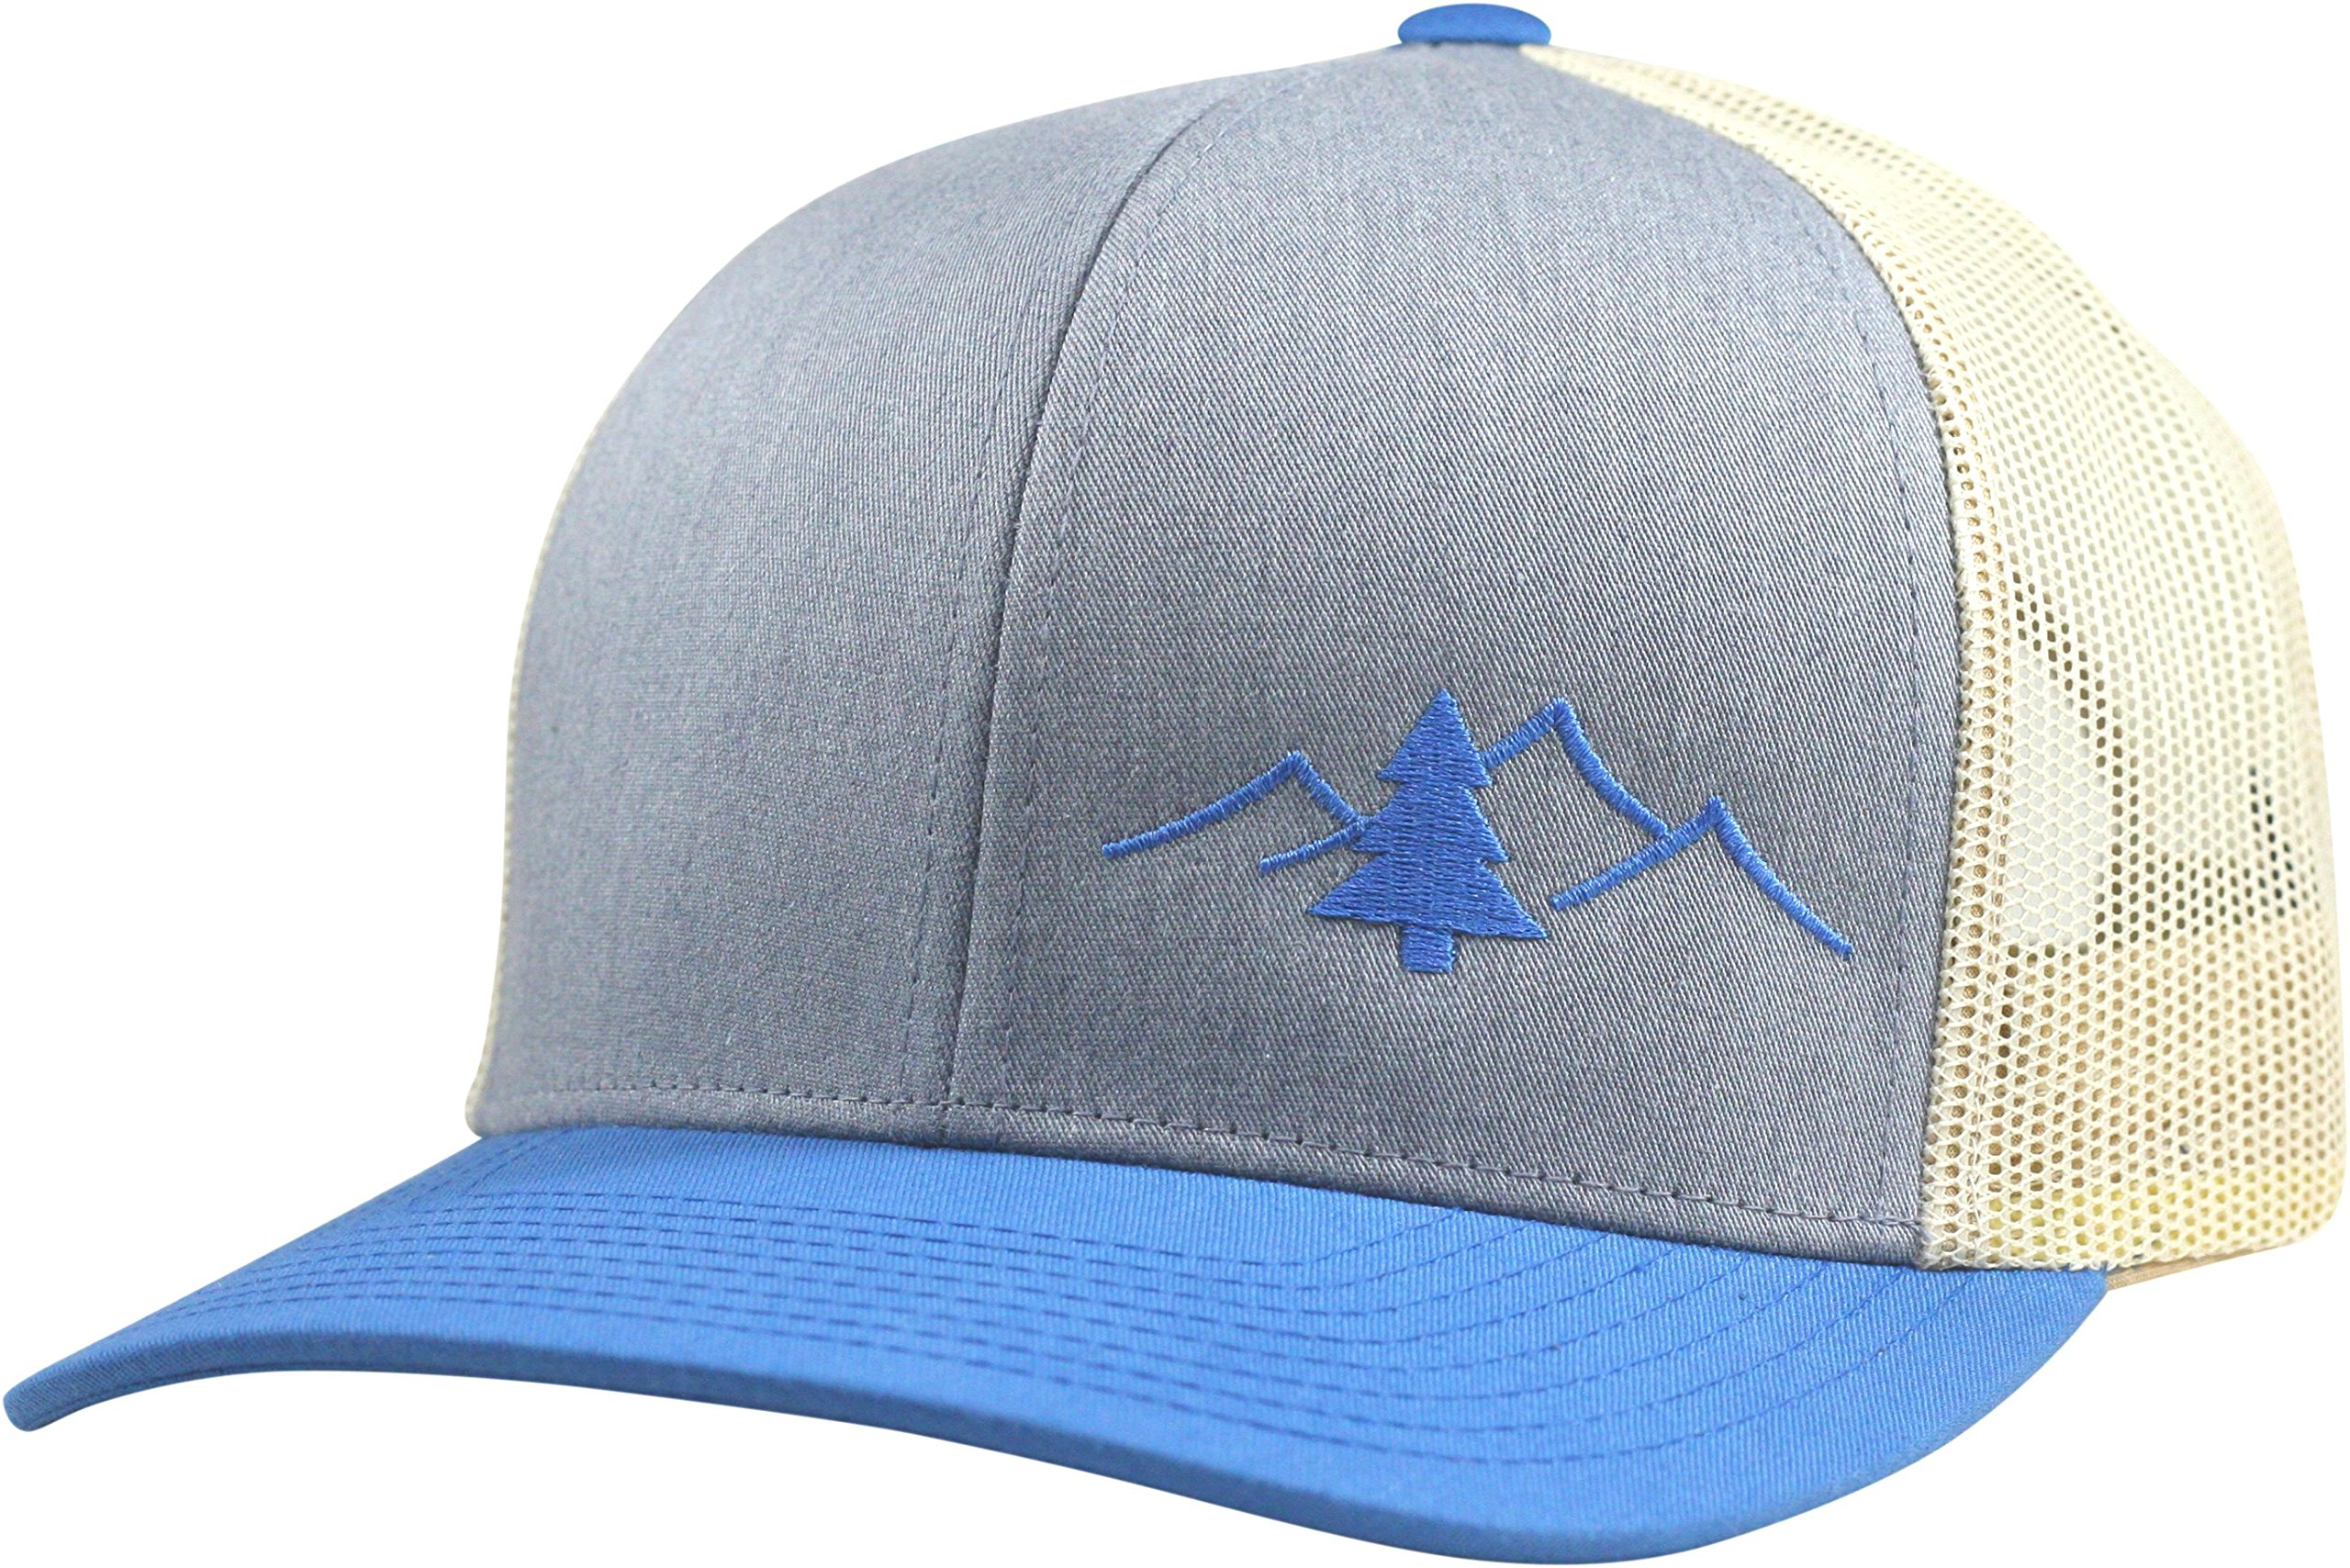 Lindo Trucker Hat - The Great Outdoors - (Heather/Blue/Beige)